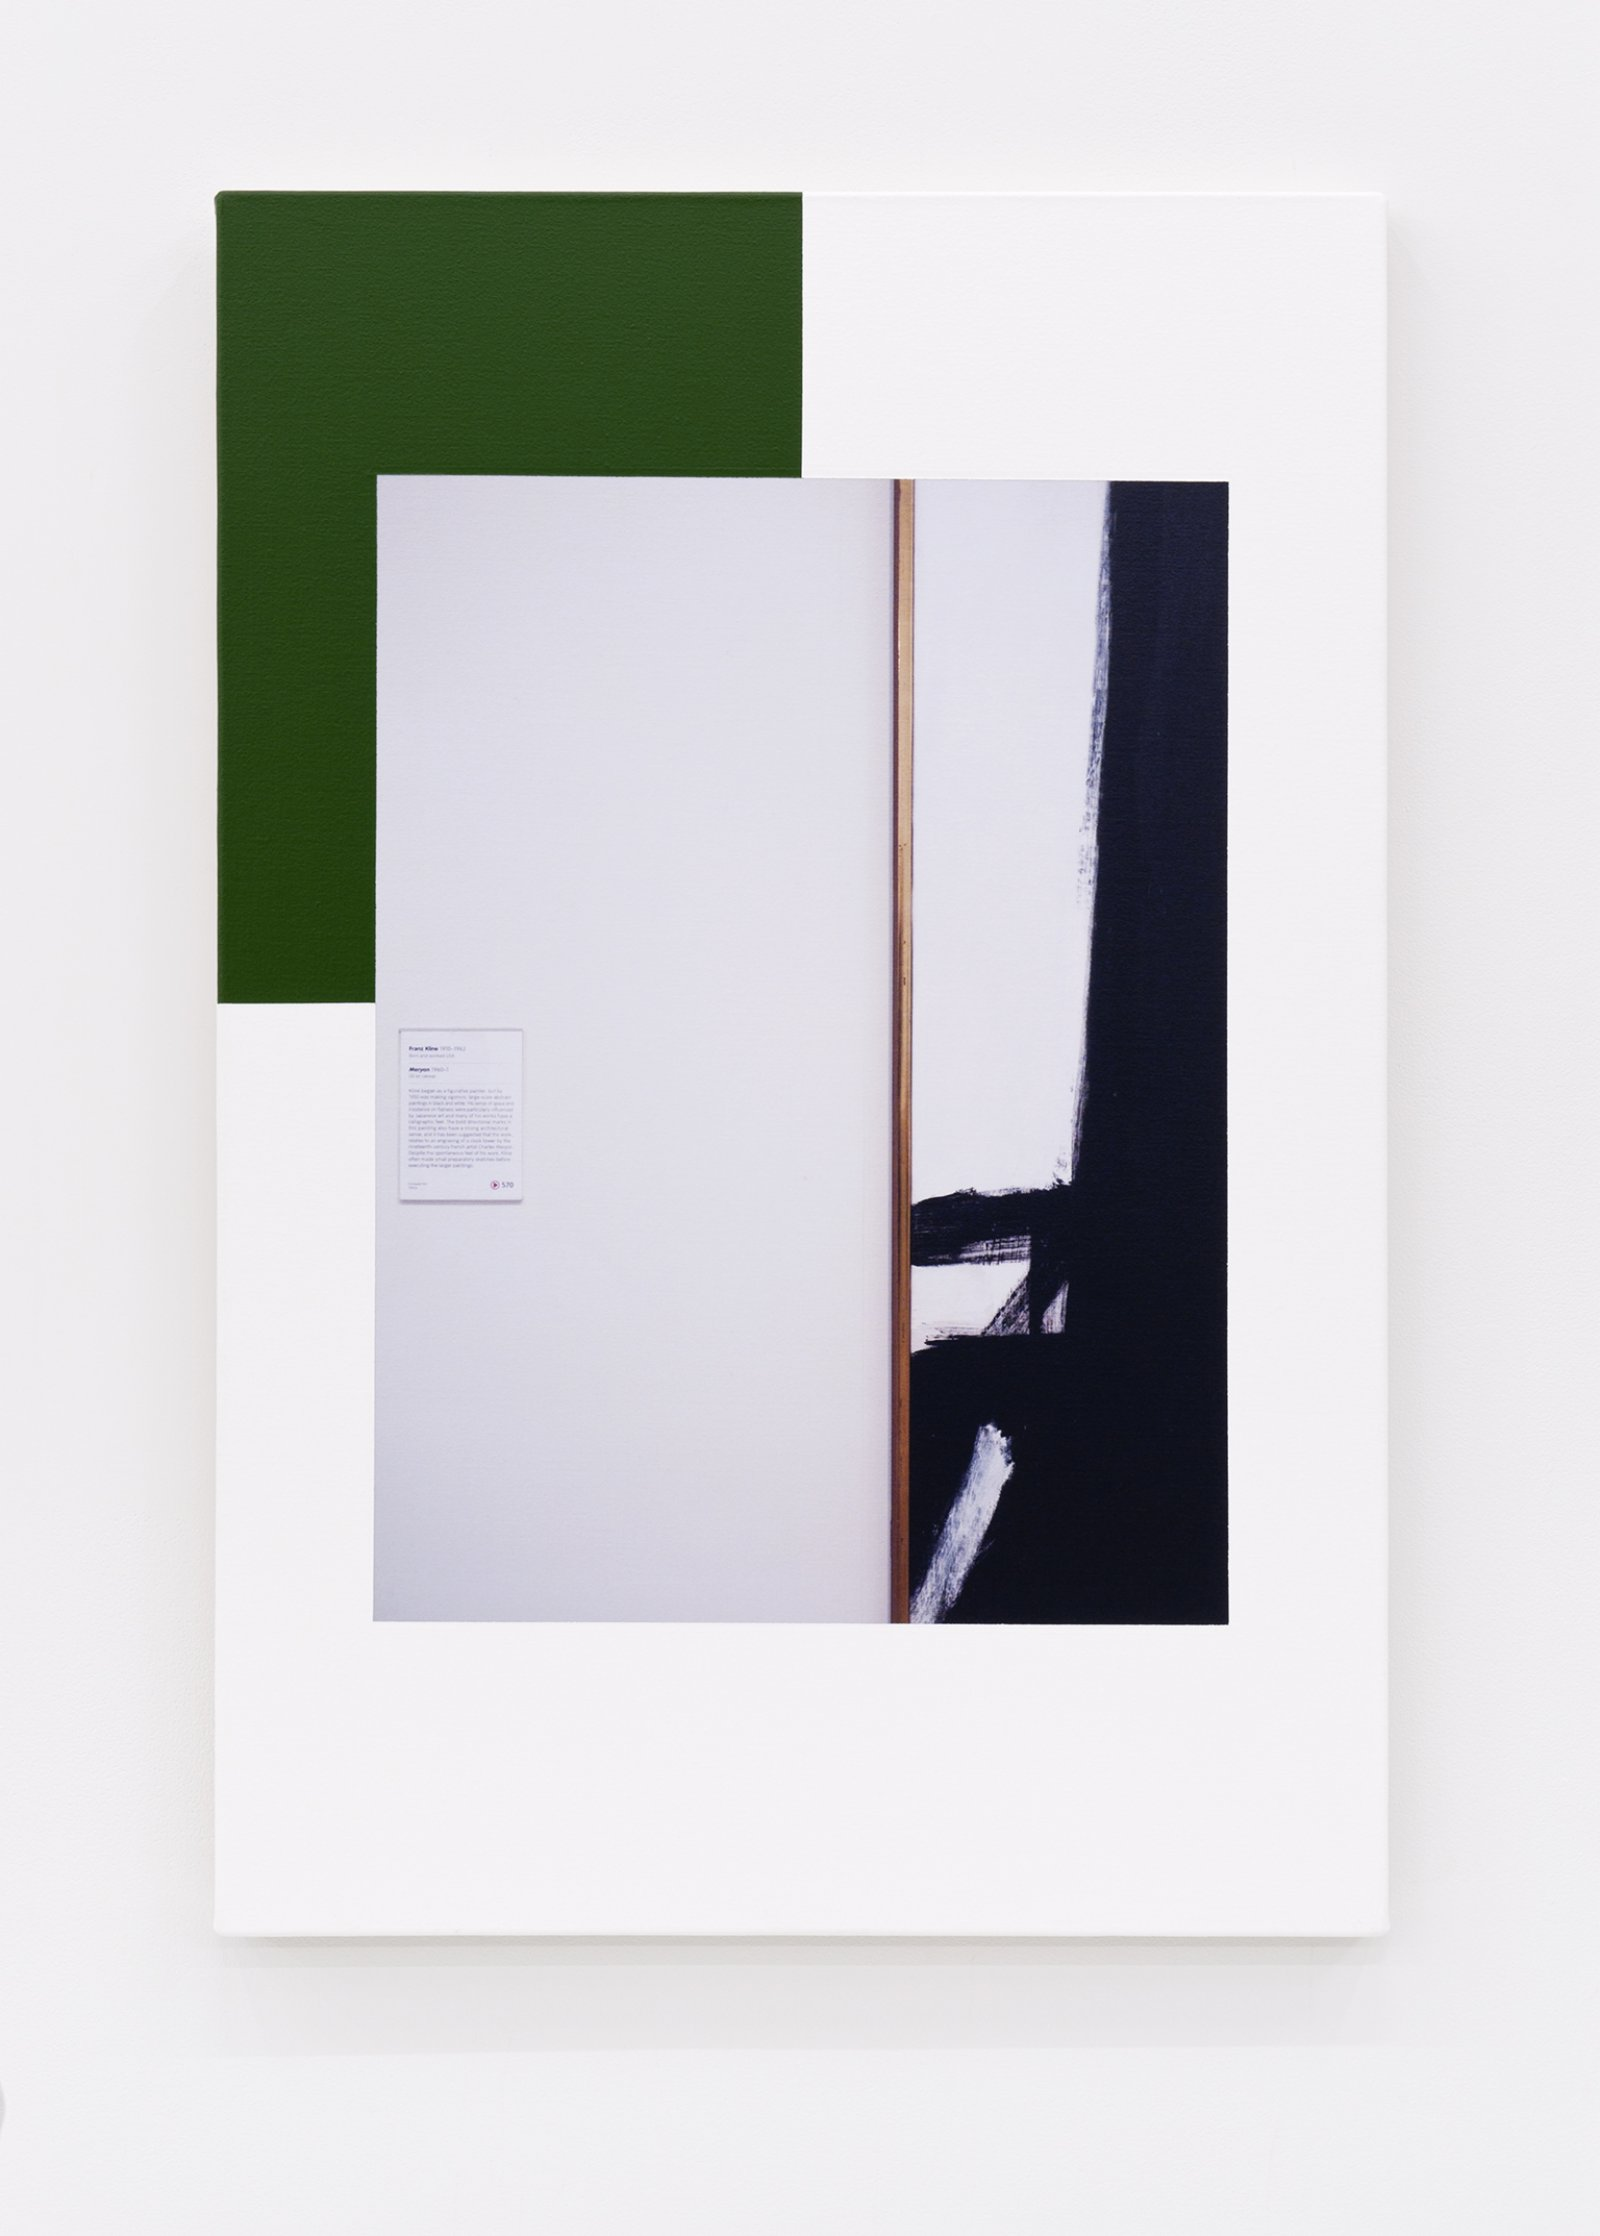 Ian Wallace,Abstract Composition(with Franz Kline),2012, photolaminate with acrylic on canvas, 36 x 24in. (91 x 61 cm)